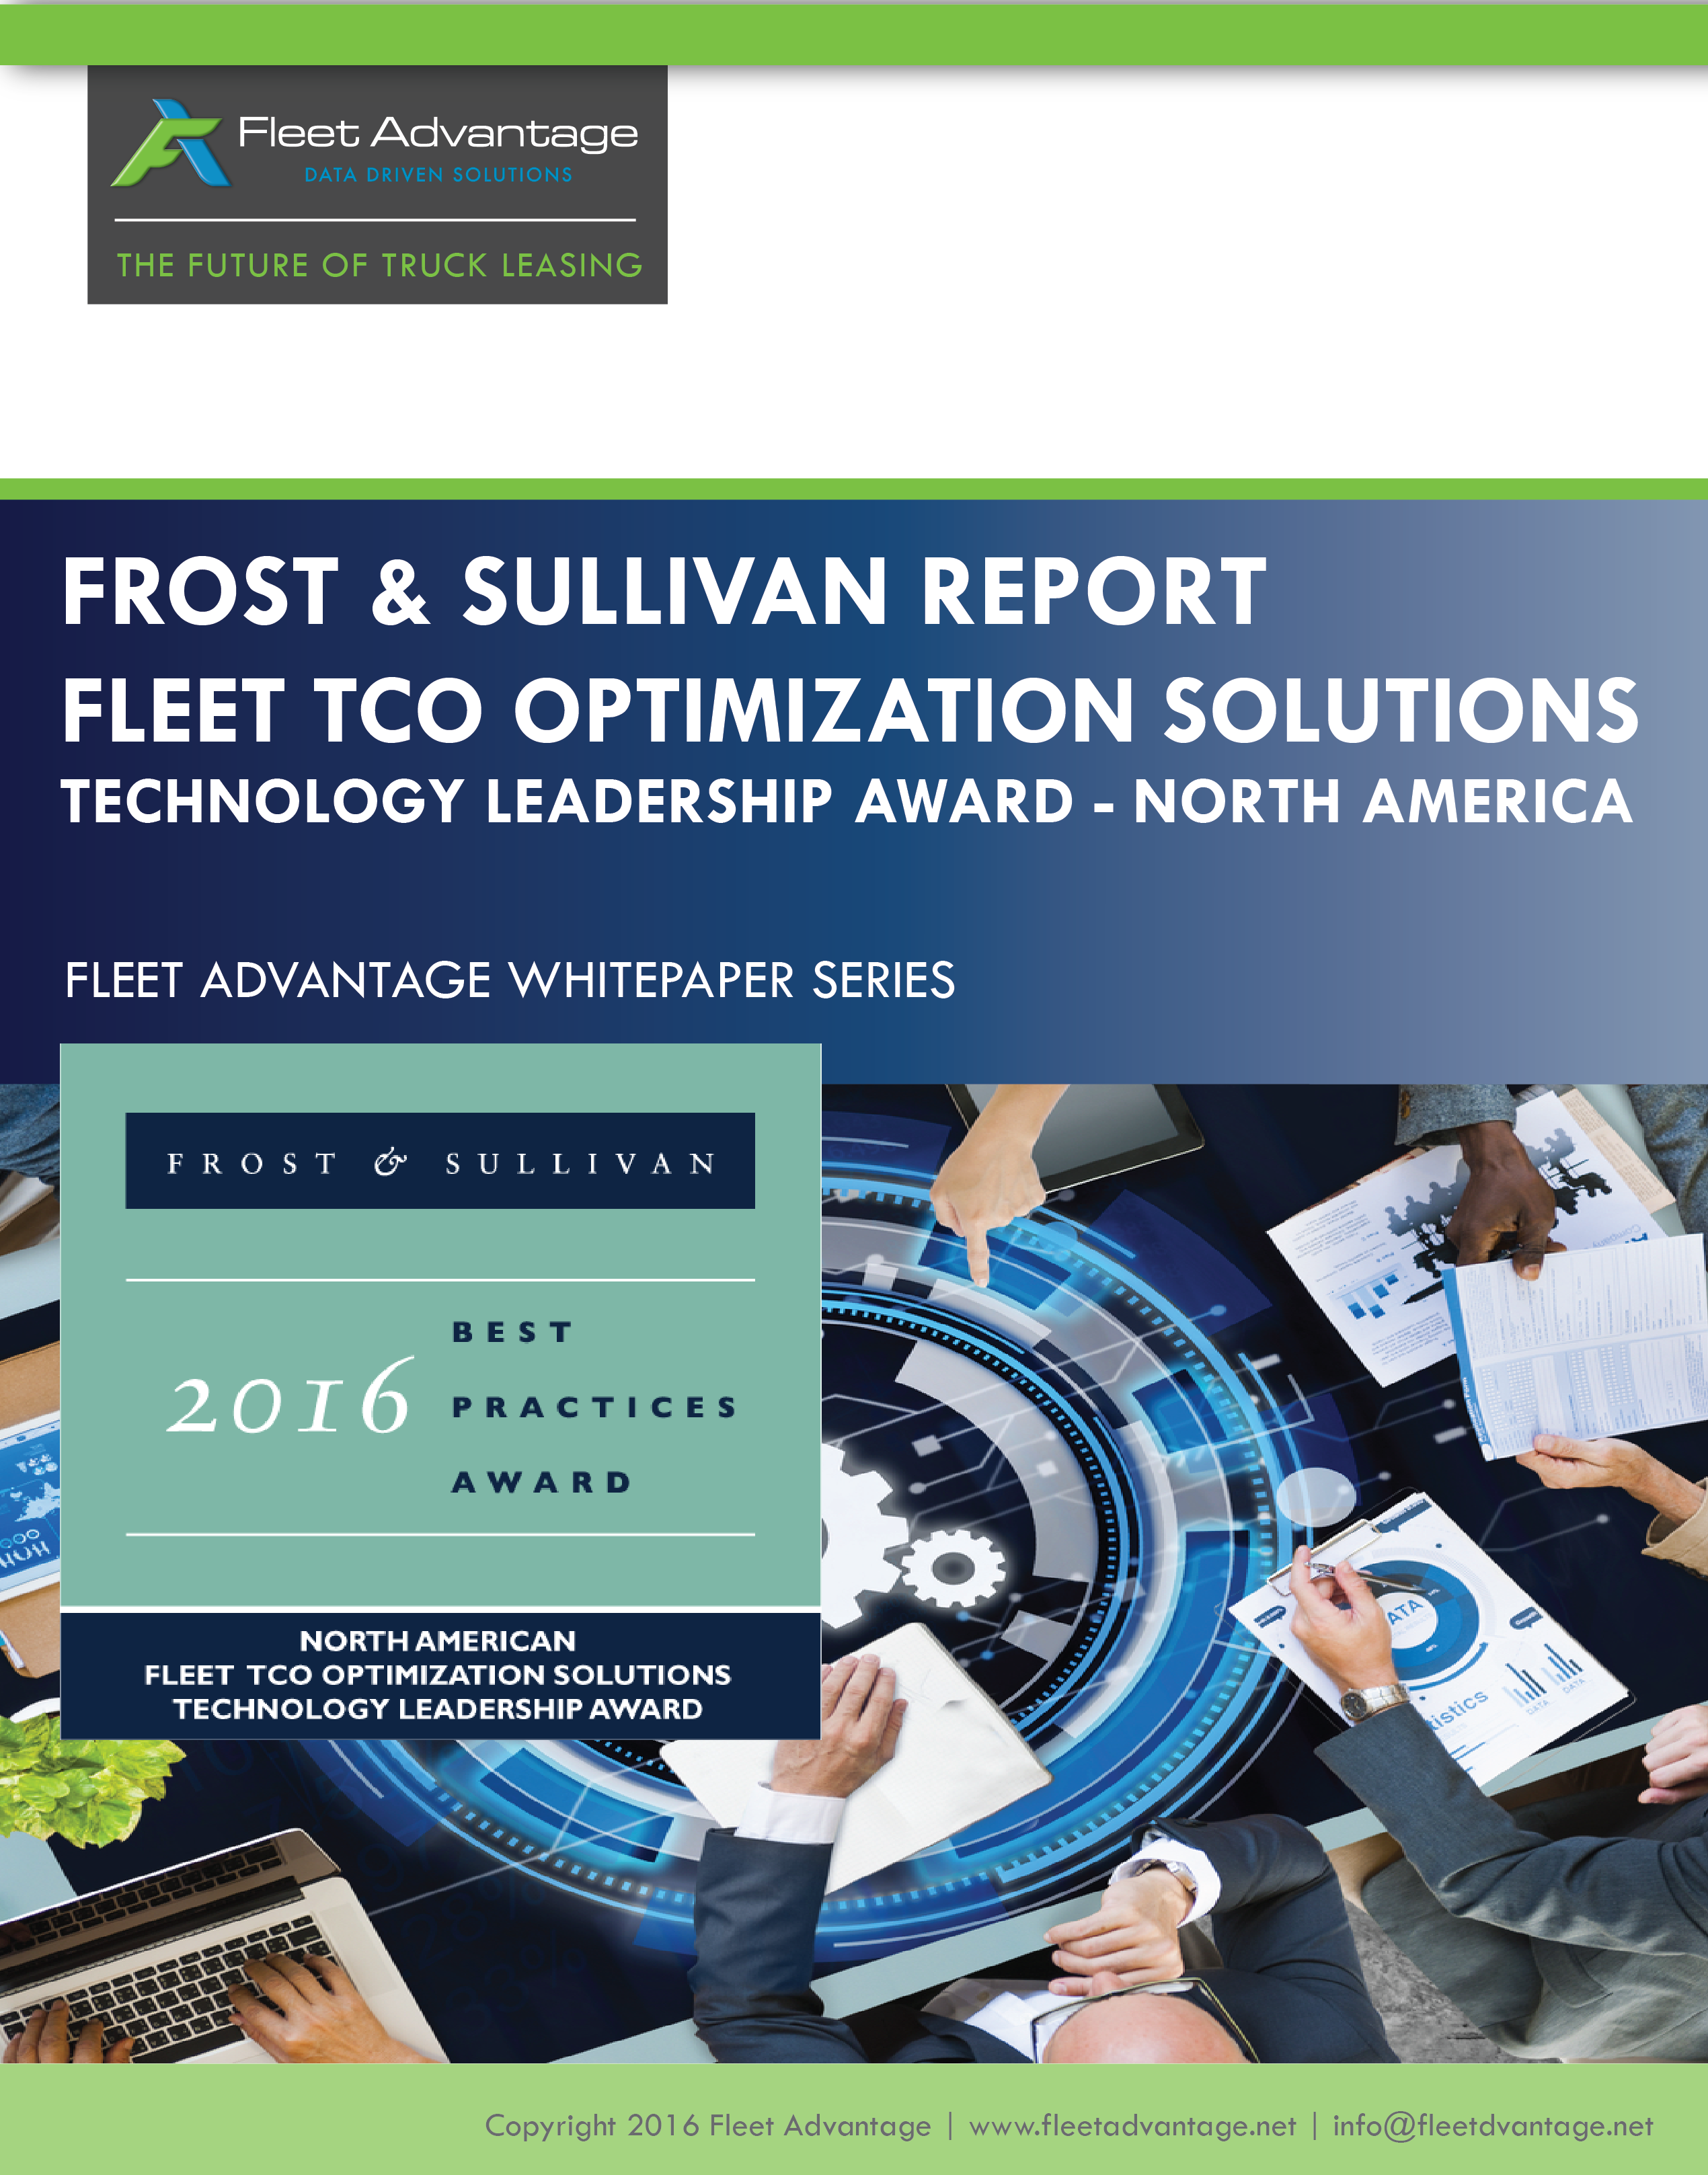 Frost & Sullivan TCO Leadership Award